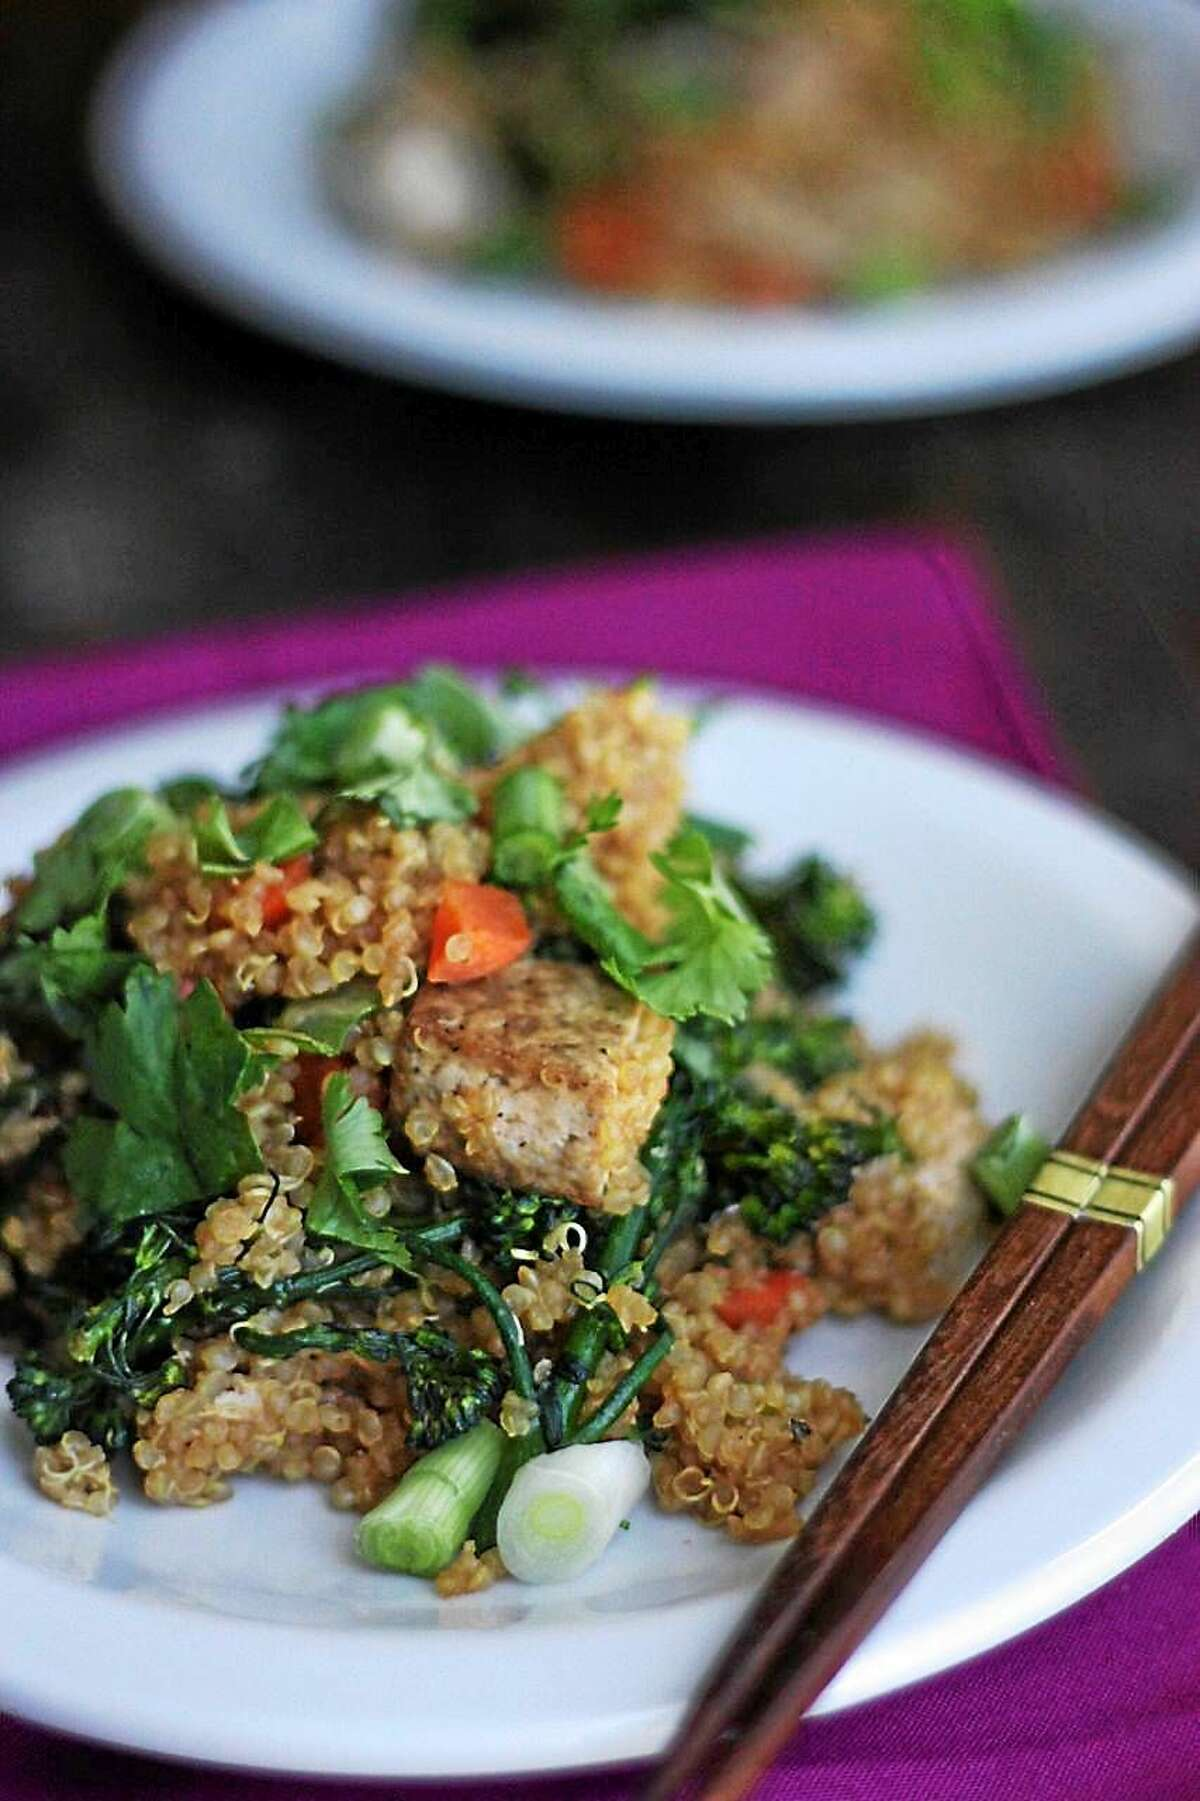 Vegetable fried quinoa with tofu, a twist on the Chinese takeout staple, is served at I.O.N. Restaurant in Middletown.